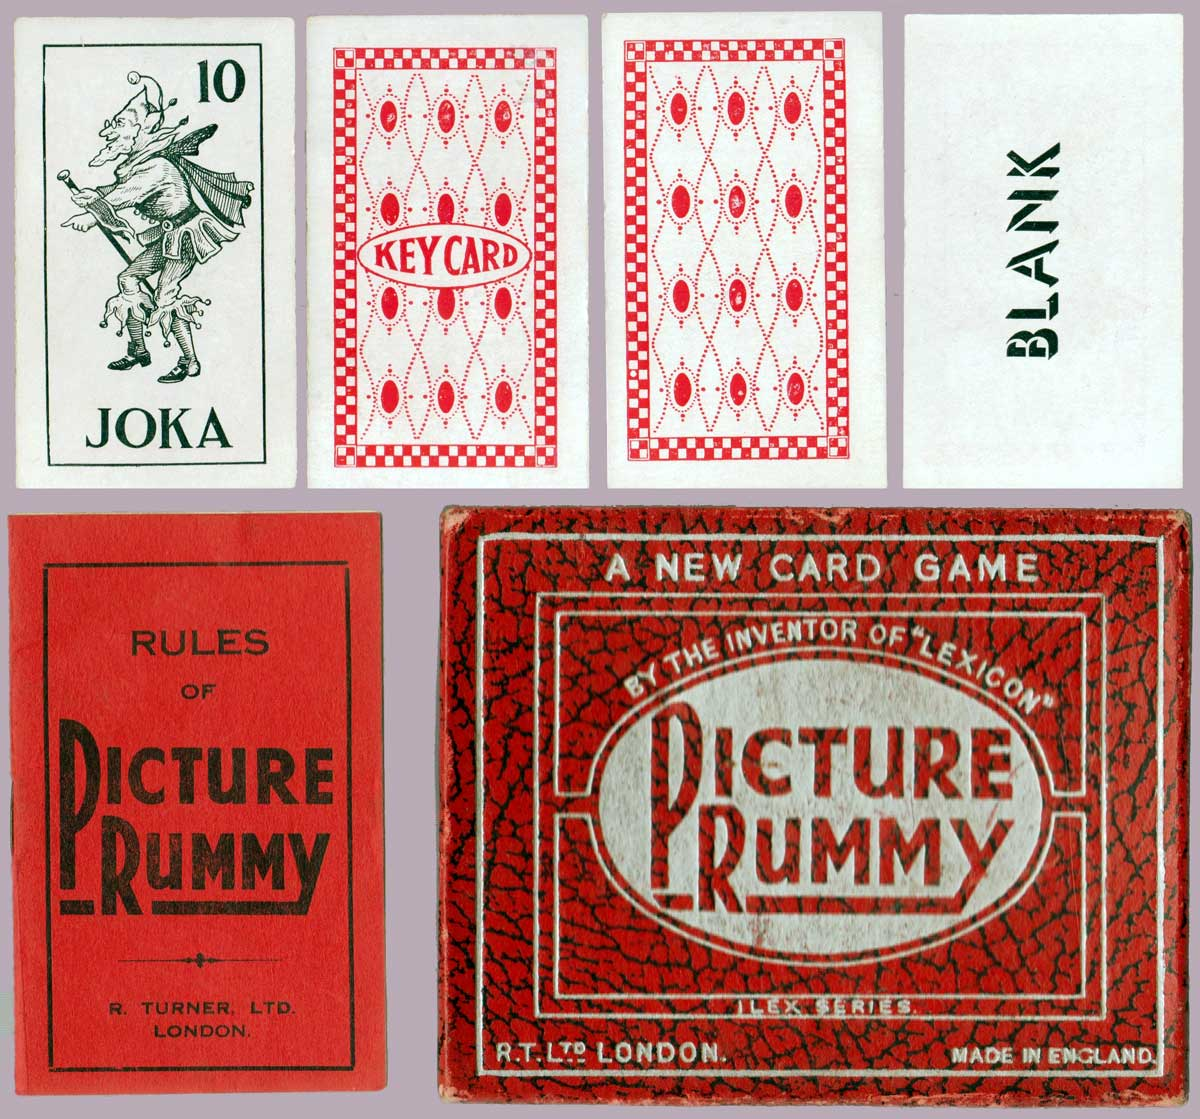 Picture Rummy by R. Turner Ltd, 1st edition, 1937